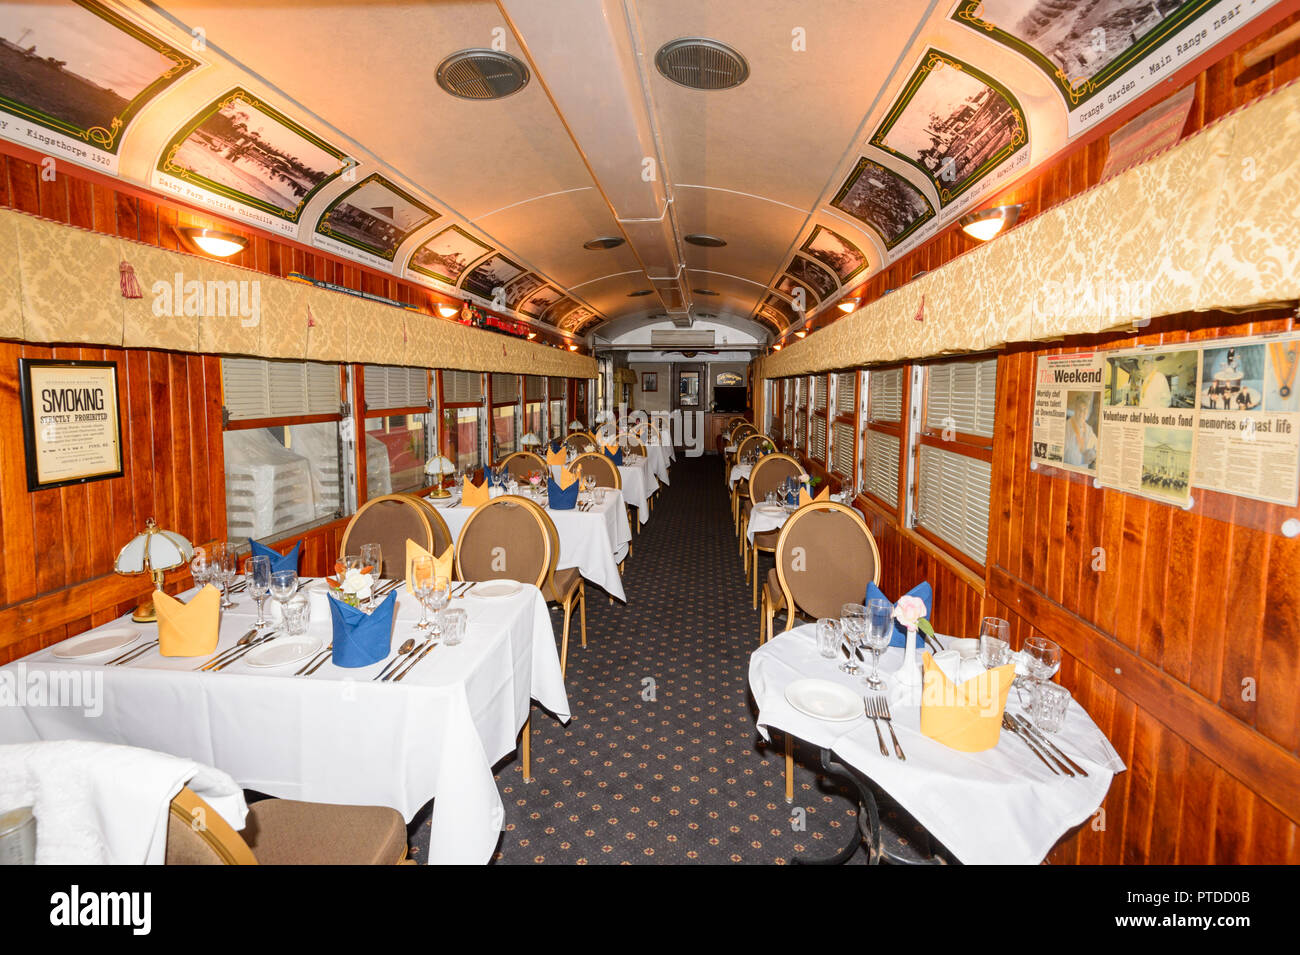 inside-a-splendid-carriage-of-the-great-